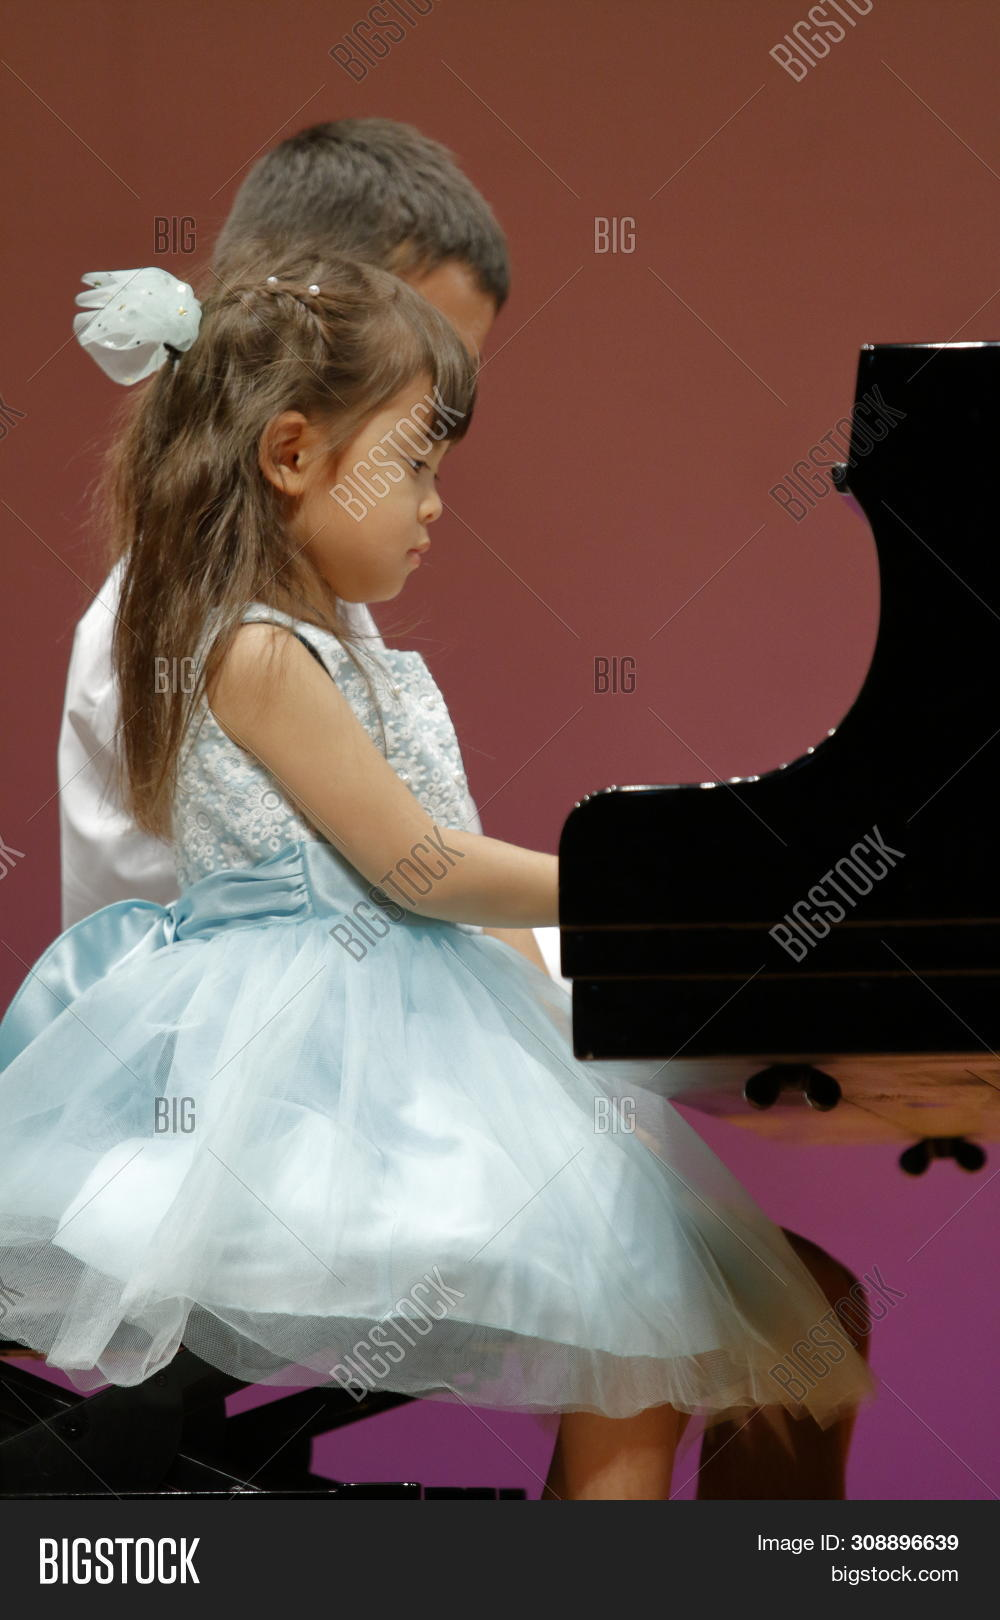 10,4,4th,9,Japanese,blouse,boy,child,classic,classical,concert,cute,dress,elementary,ethnicity,female,formal,four,fourth,full,girl,grade,grand,guy,hall,human,instrument,kid,kindergarten,male,man,music,musical,old,people,persons,piano,play,playing,primary,pupil,school,stage,student,two,under,wear,woman,years